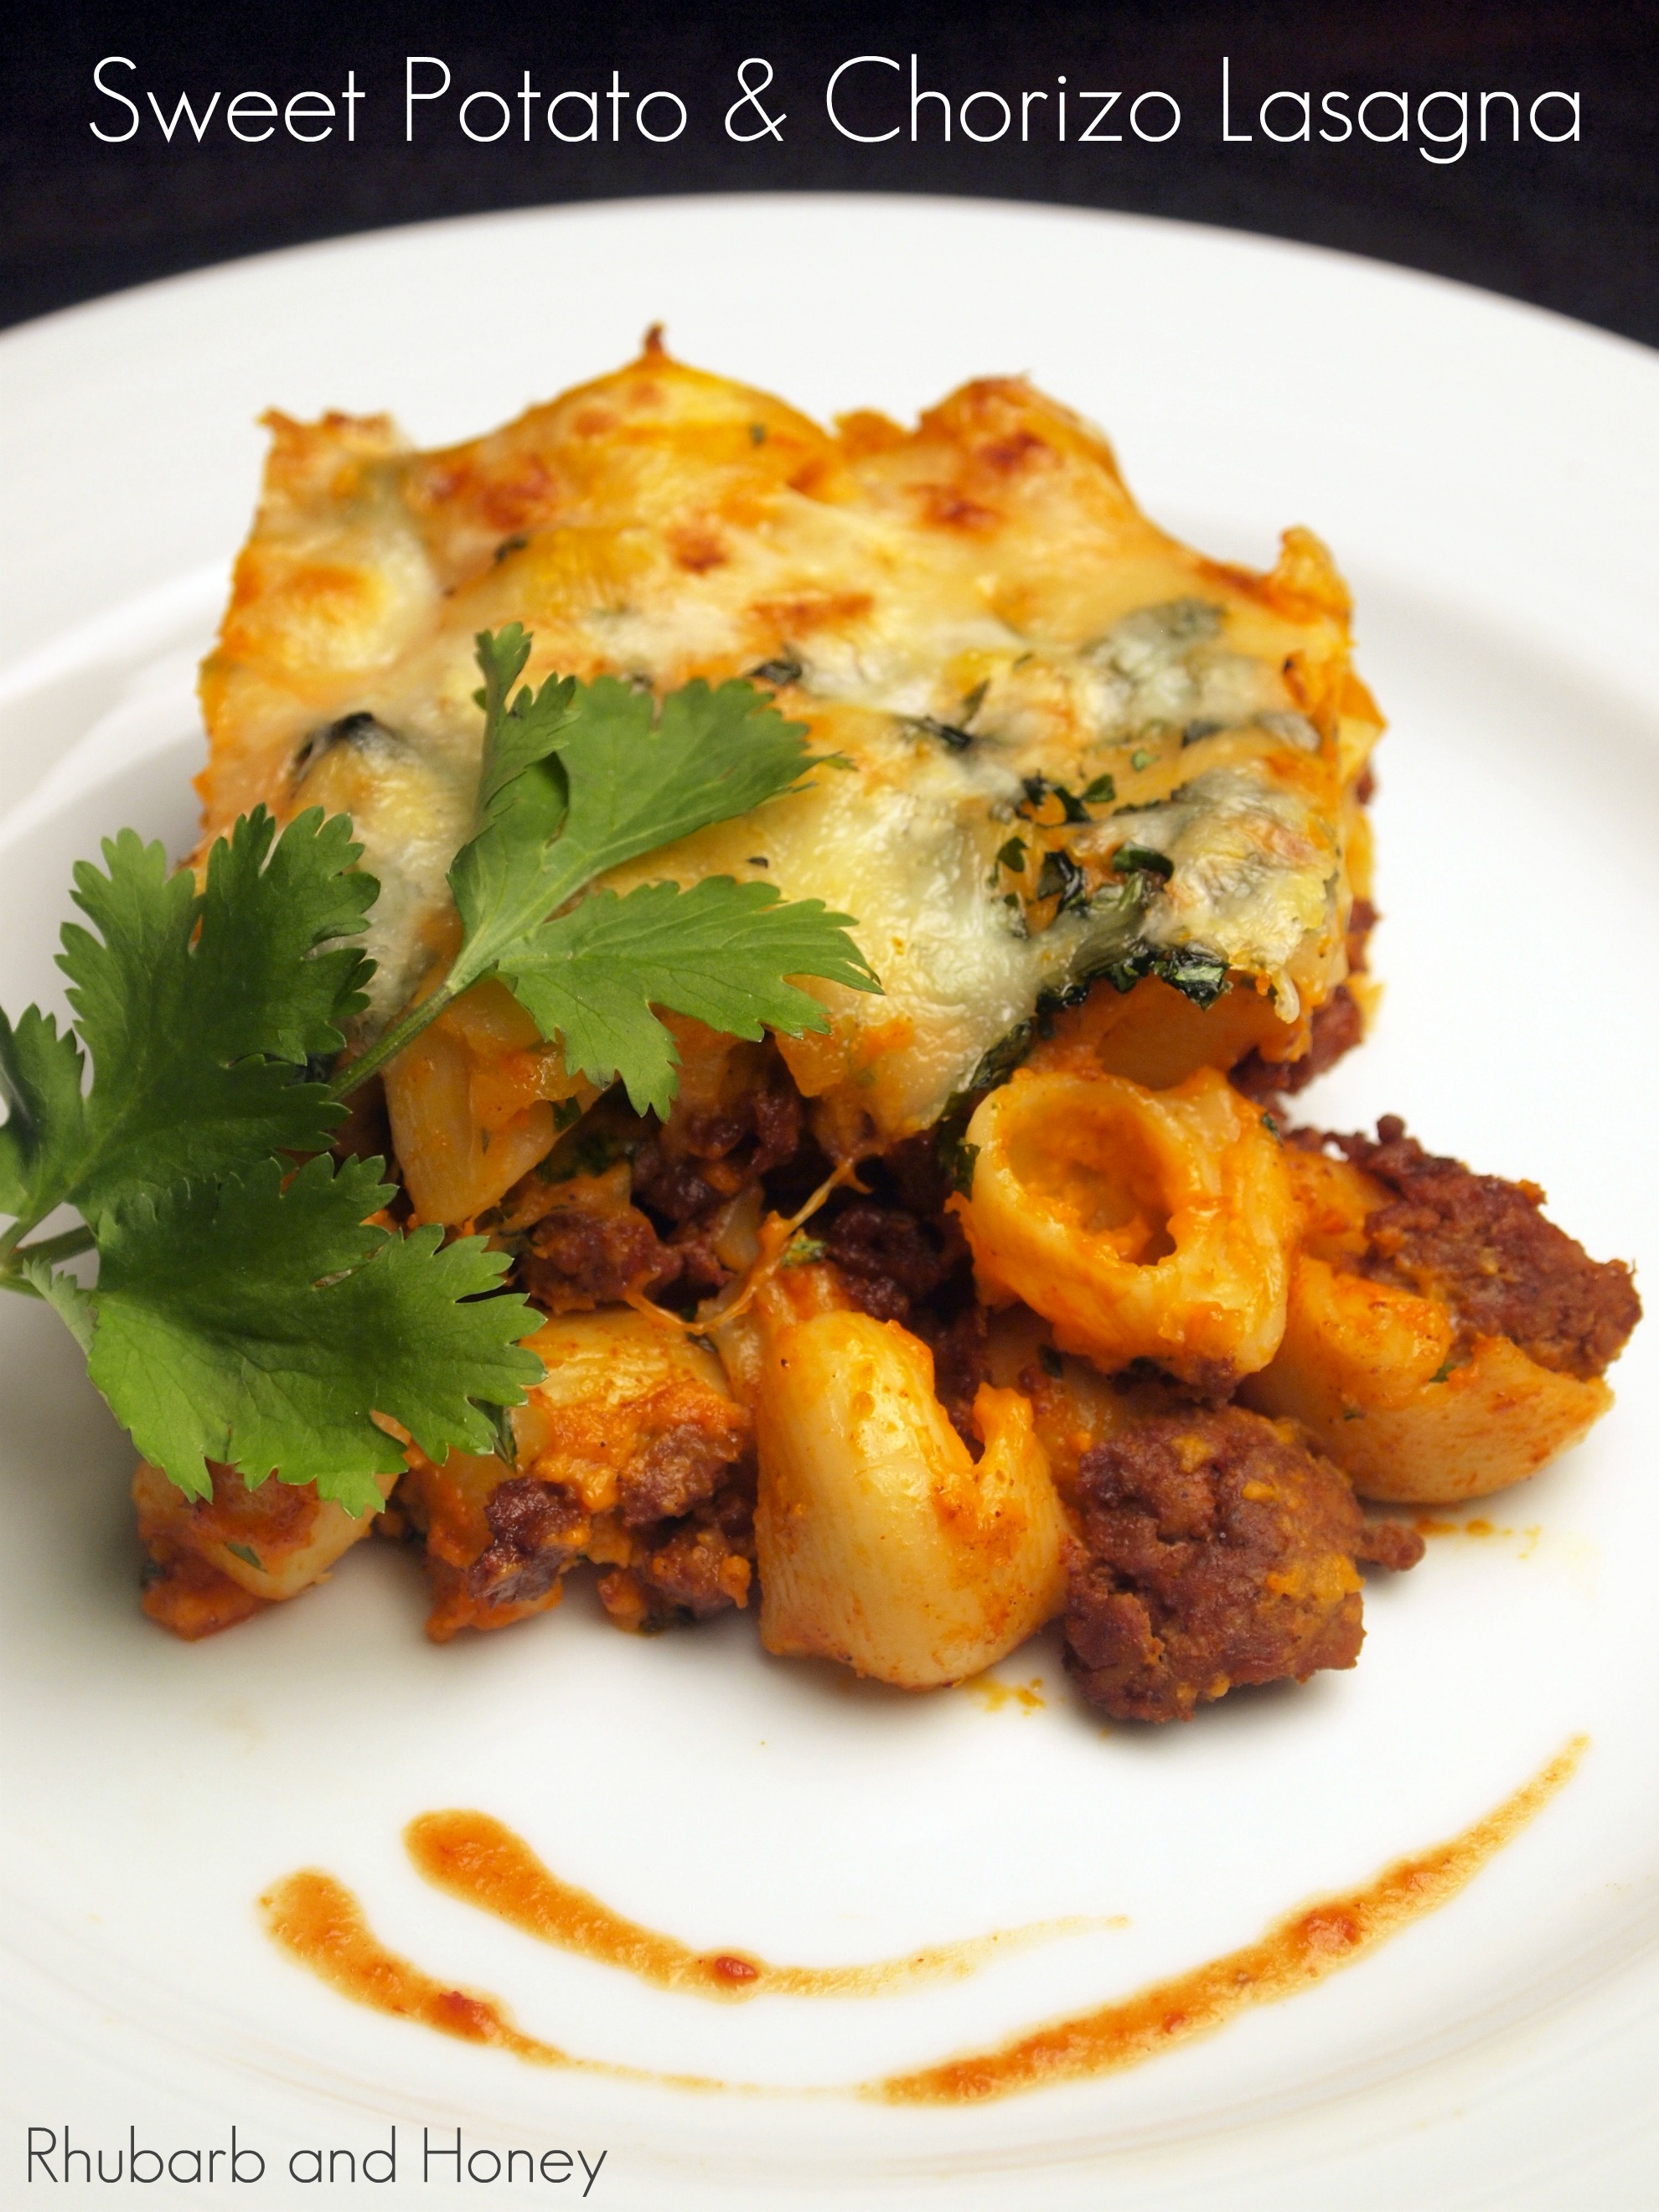 Sweet Potato and Chorizo Lasagna